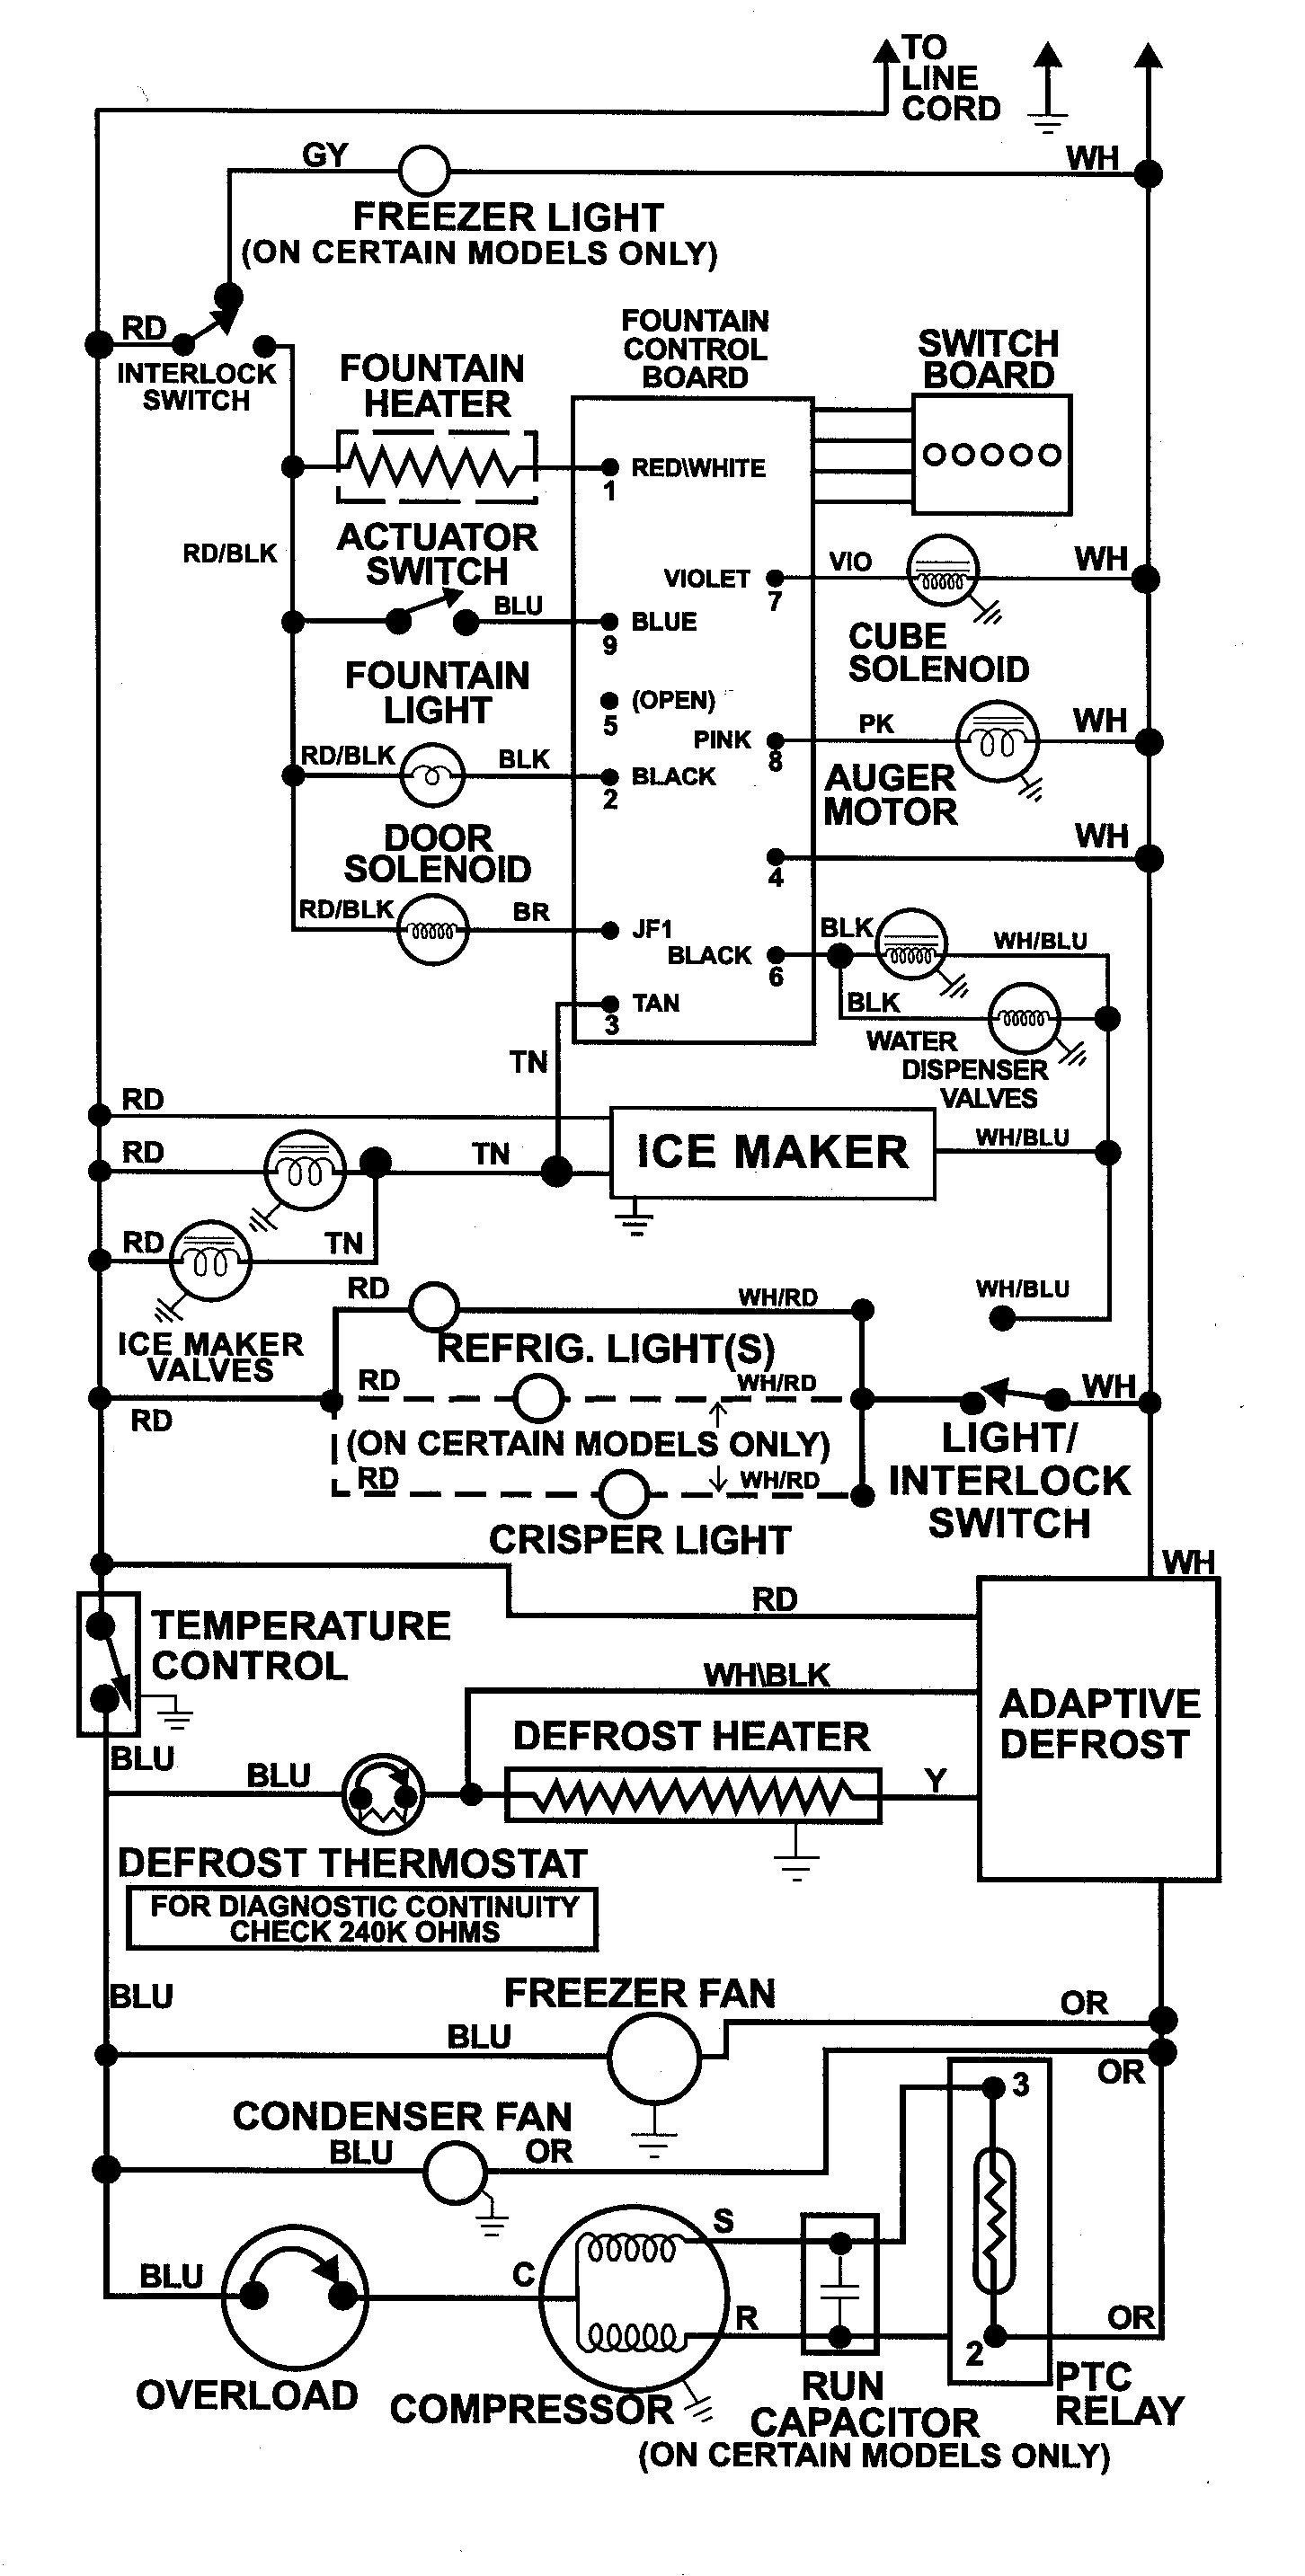 hight resolution of refrigerators parts maytag refrigerator parts diagram compressor start capacitor wiring diagram compressor start relay wiring diagram